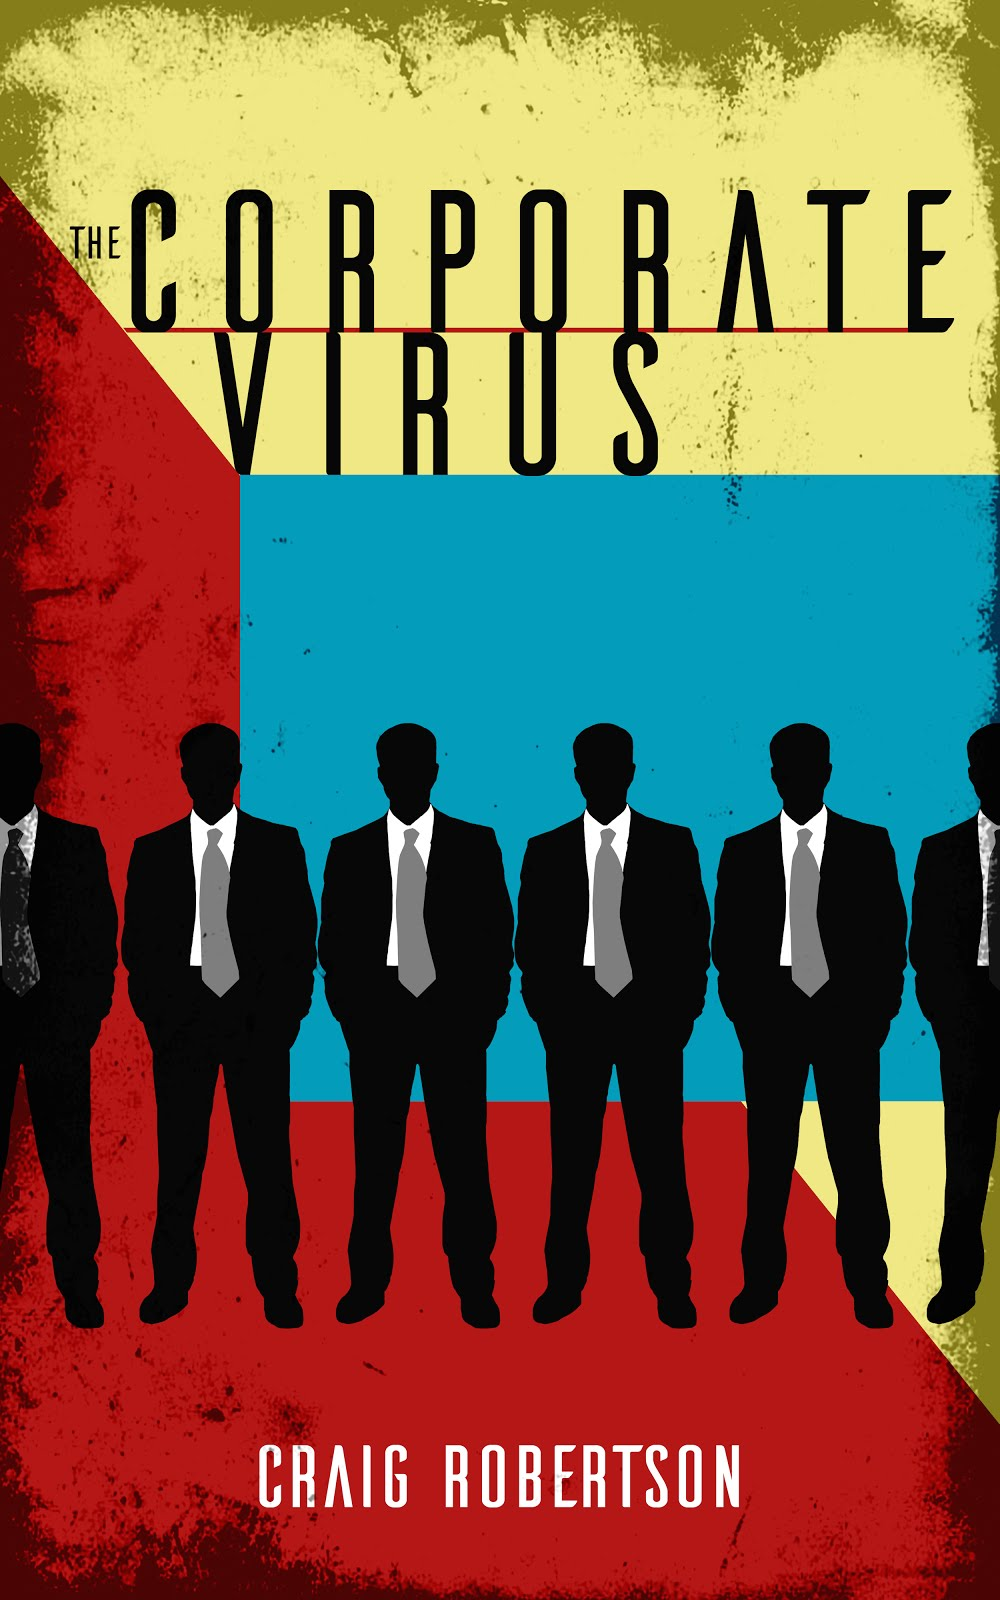 The Corporate Virus